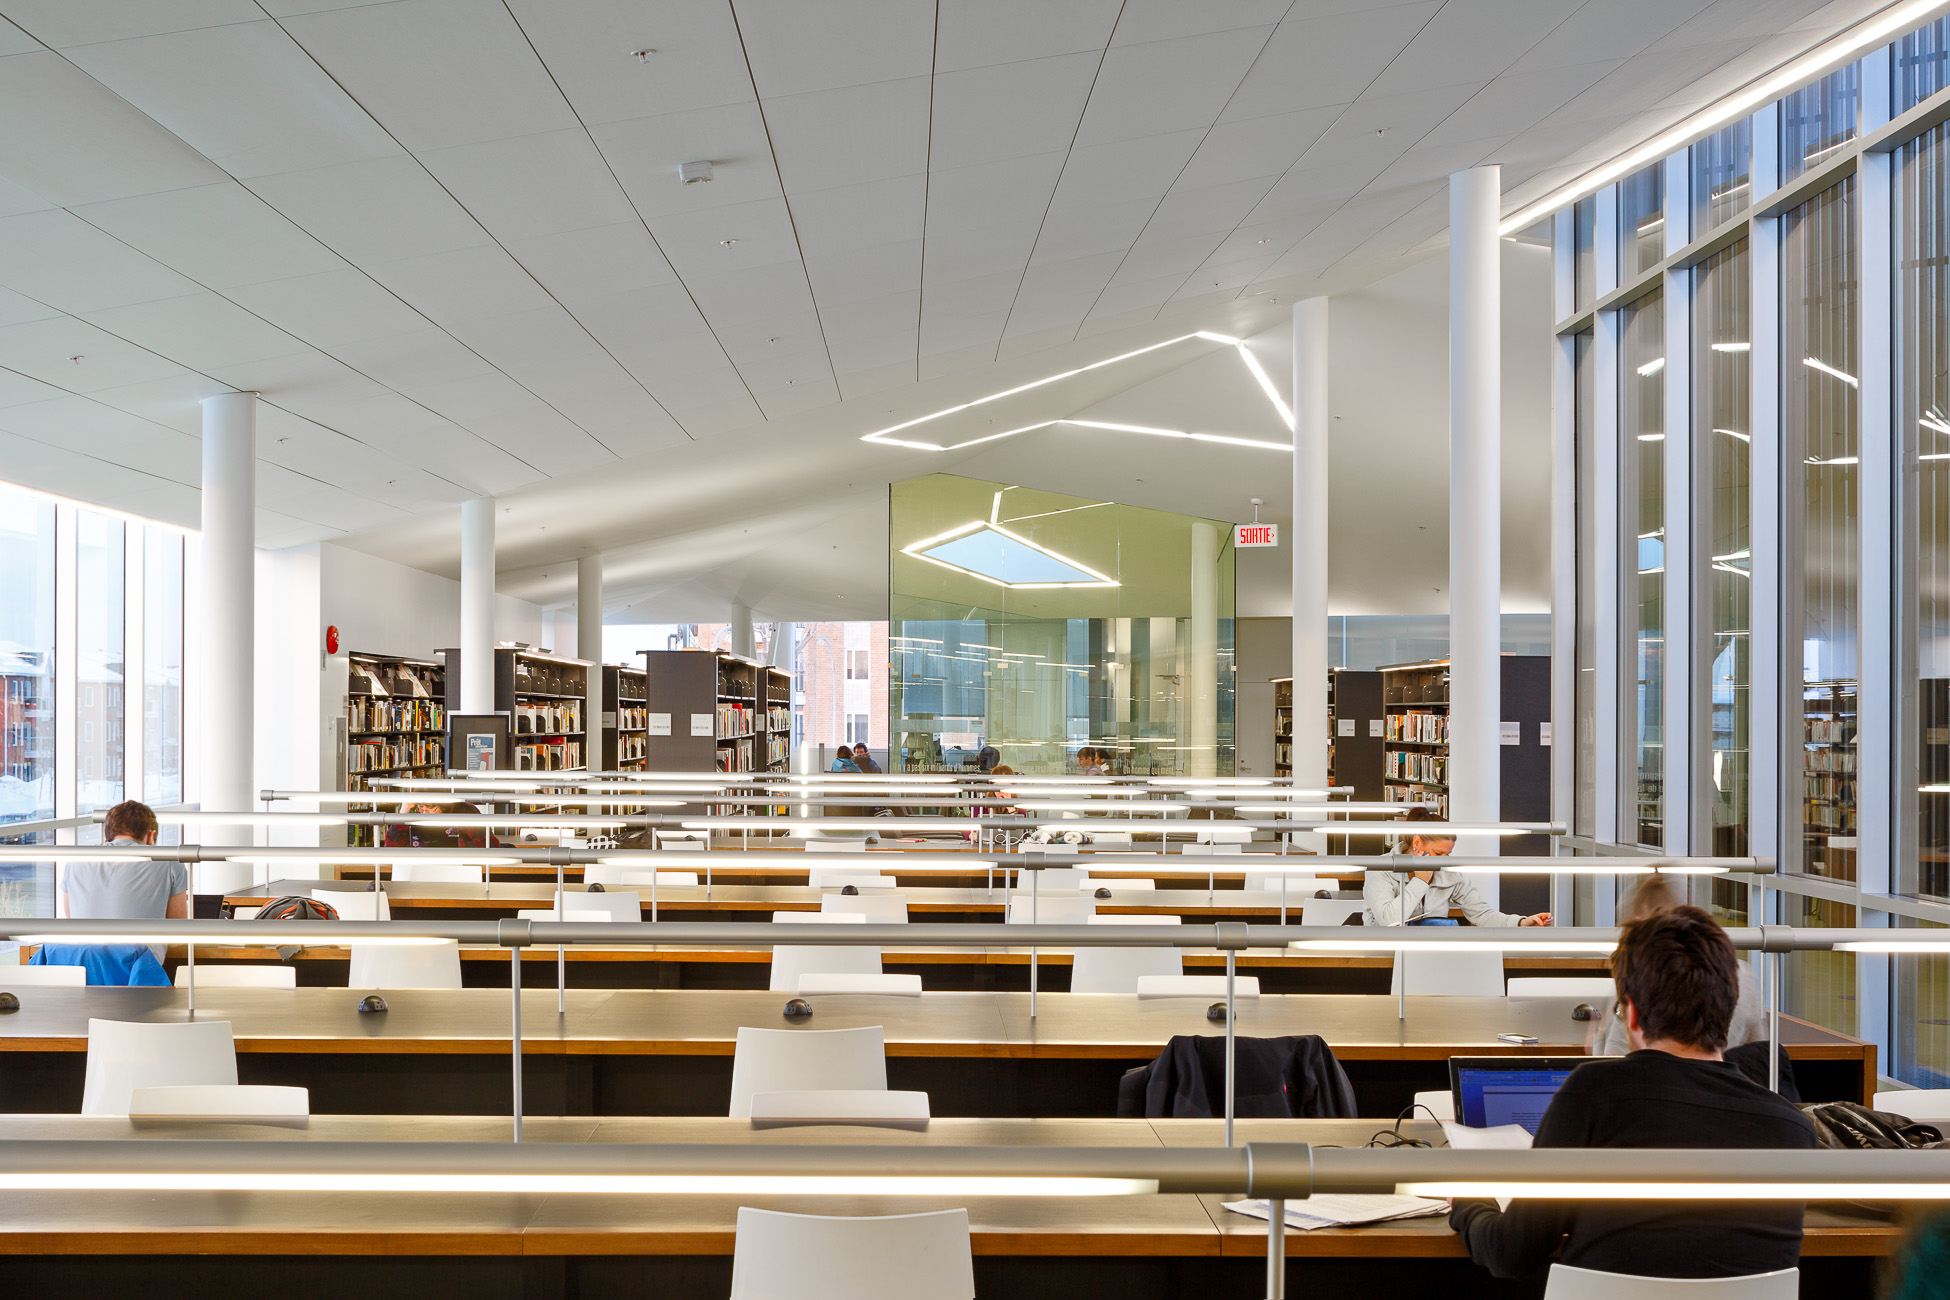 doublespace_architecture_photograph_montreal_library_bibliotheque_raymond_levesque -8.jpg